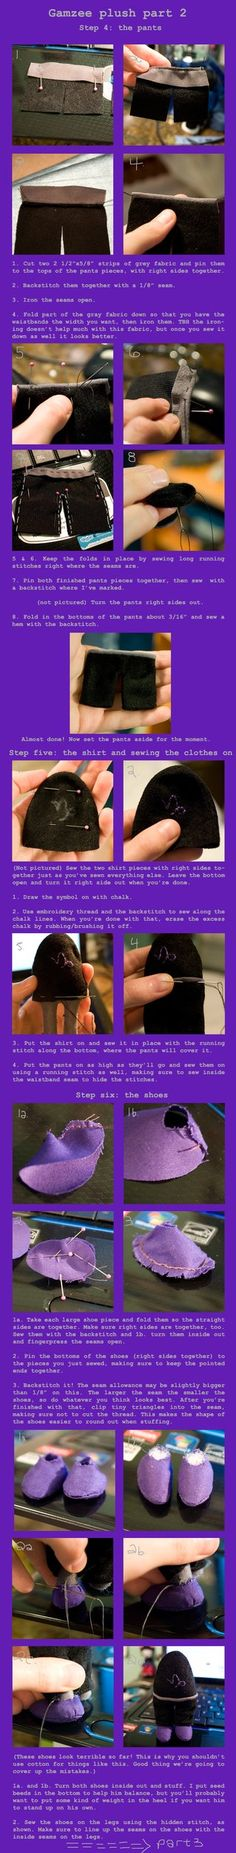 gamzee tutorial part 2 by ~b00ts on deviantART